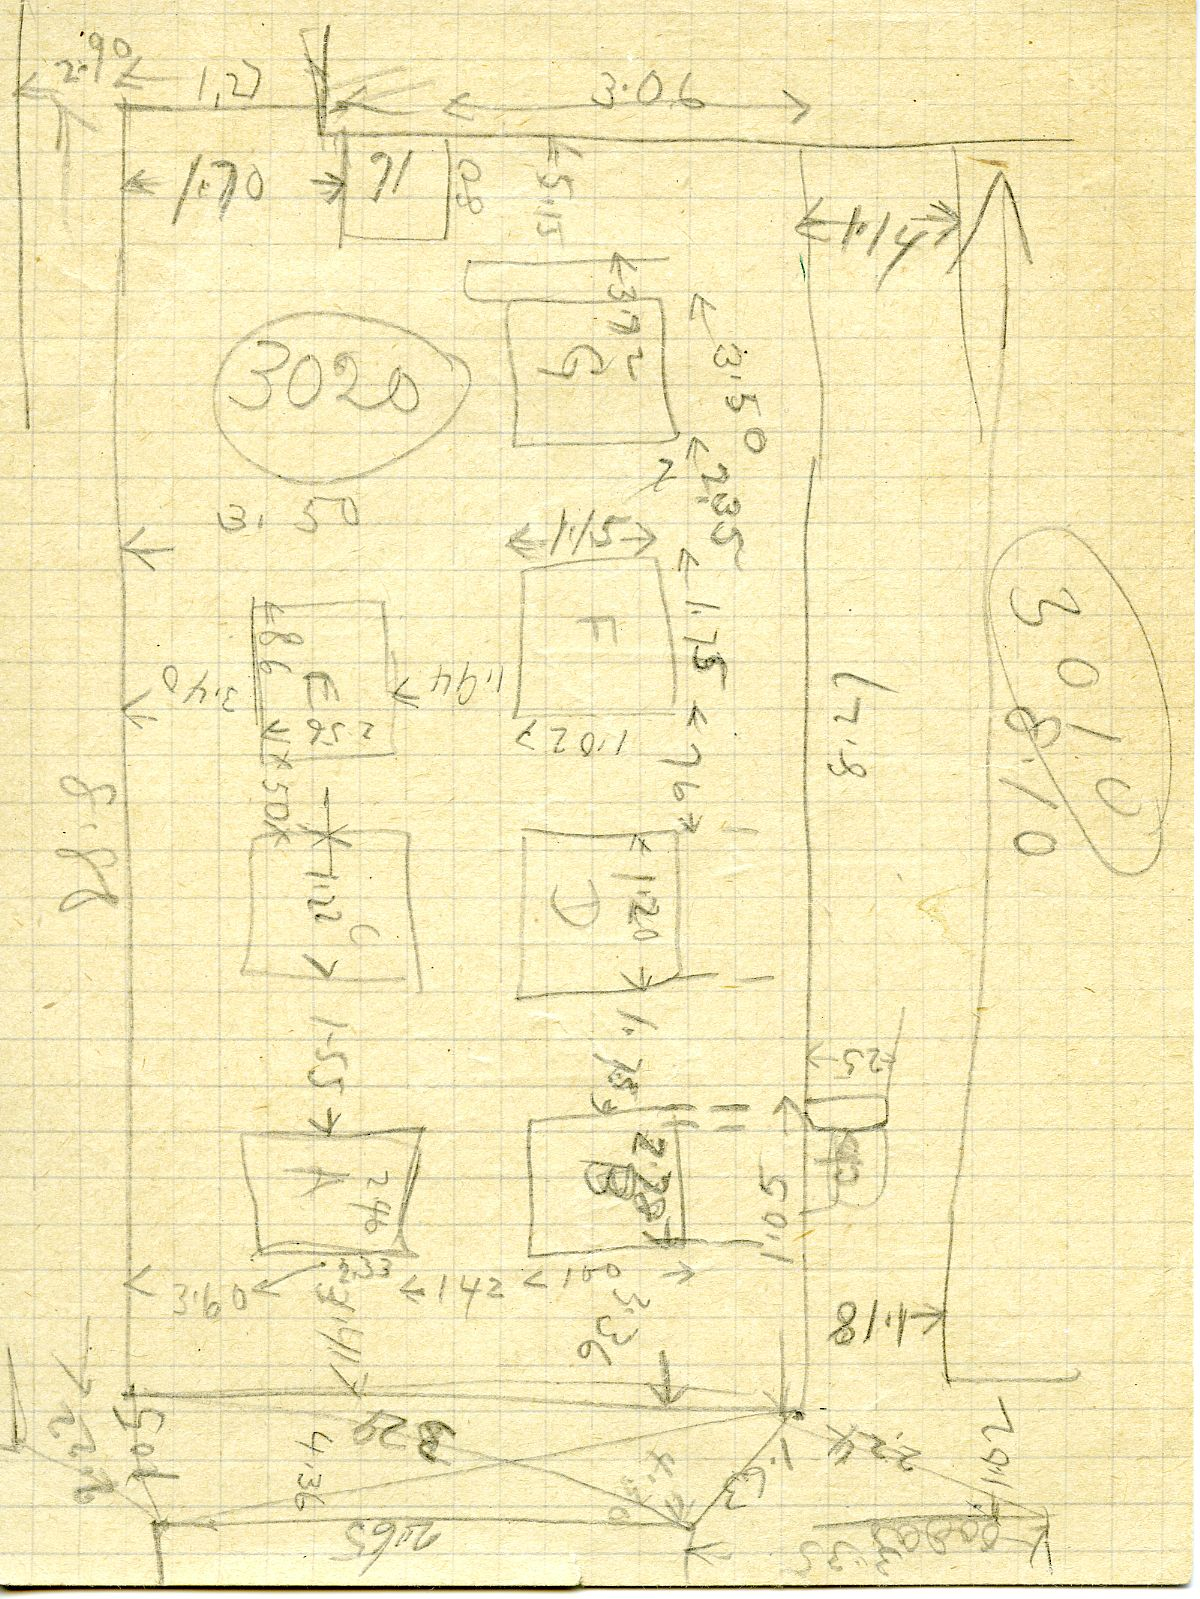 Maps and plans: G 3020, Sketch plan